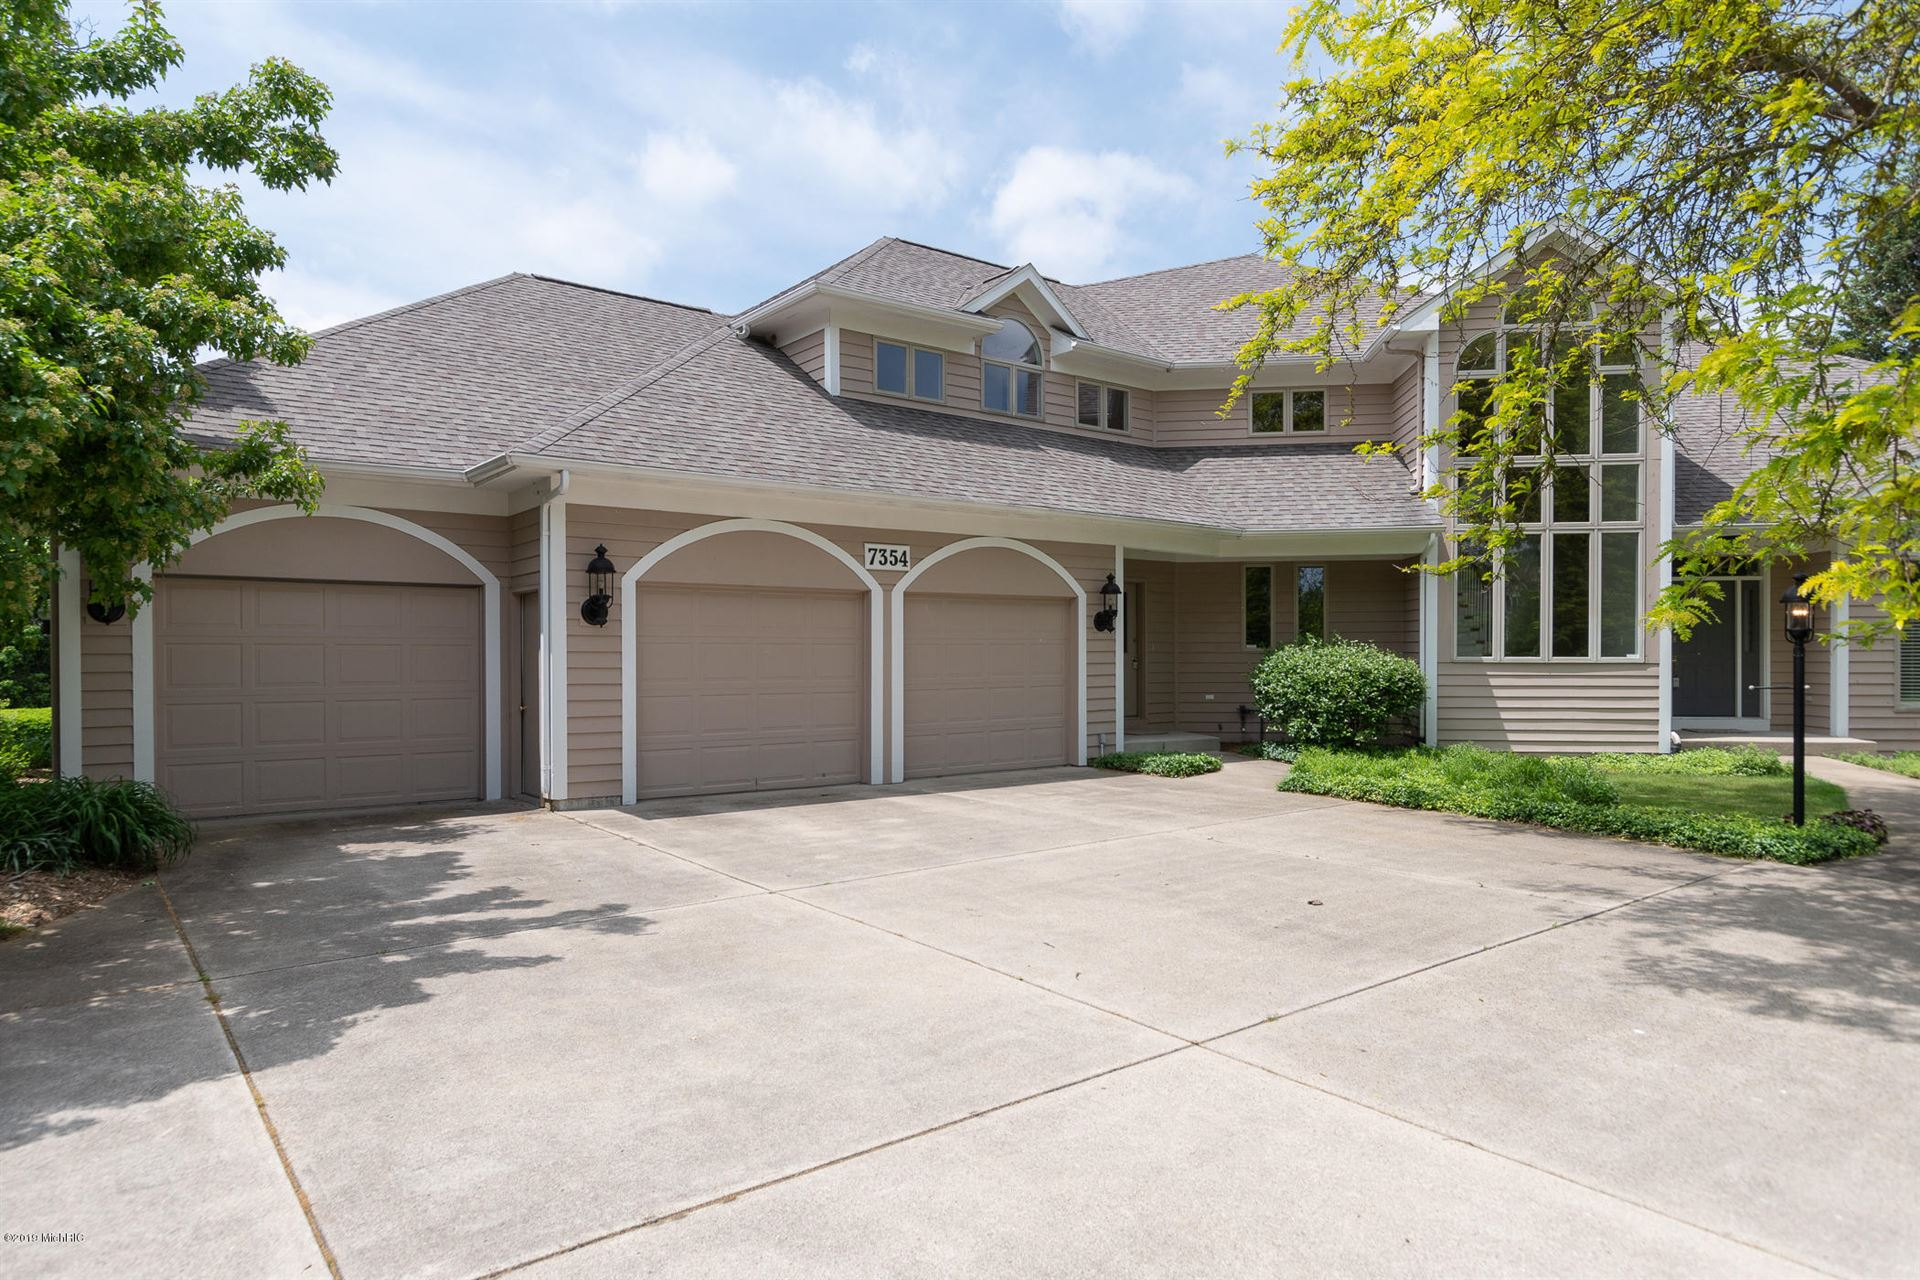 7354 Cottage Oaks Drive, Portage, MI 49024 - MLS#: 20028370